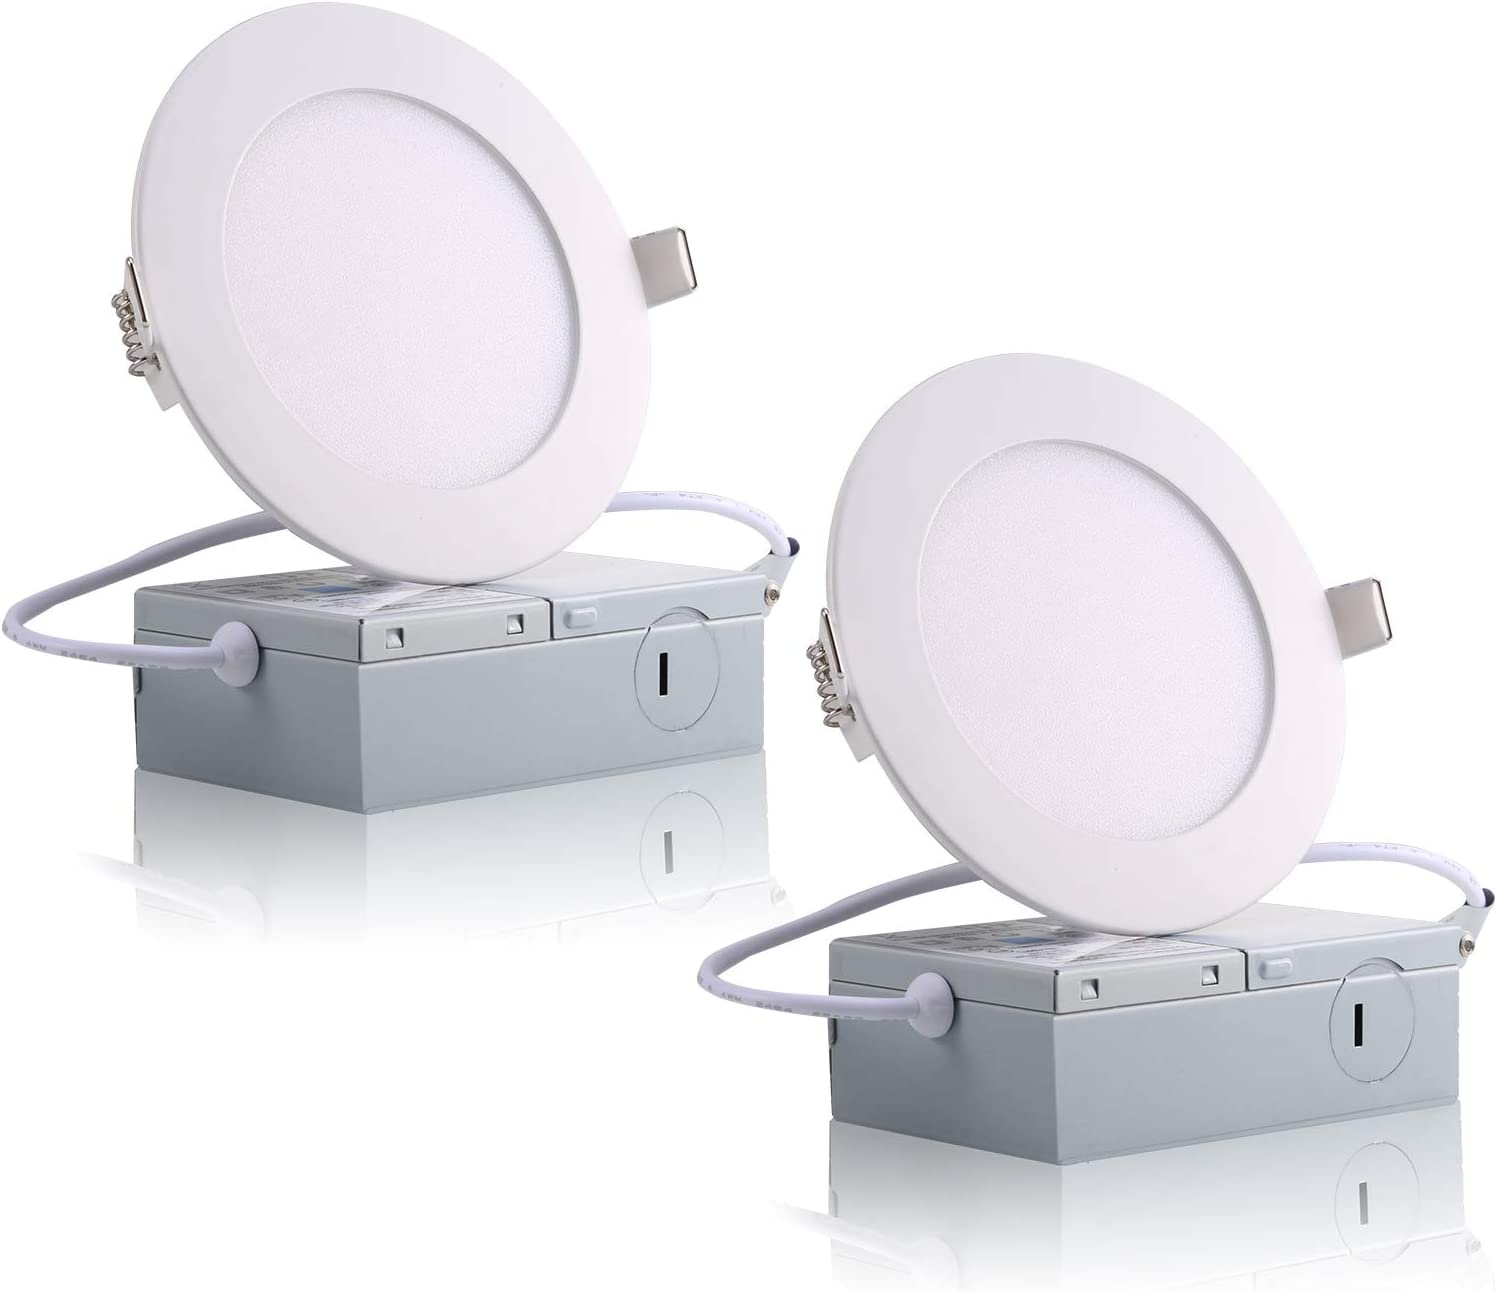 Complete Free Shipping ProGreen 12W Flat Limited price LED Panel Ultrathin Light Dimmable Lamp Round